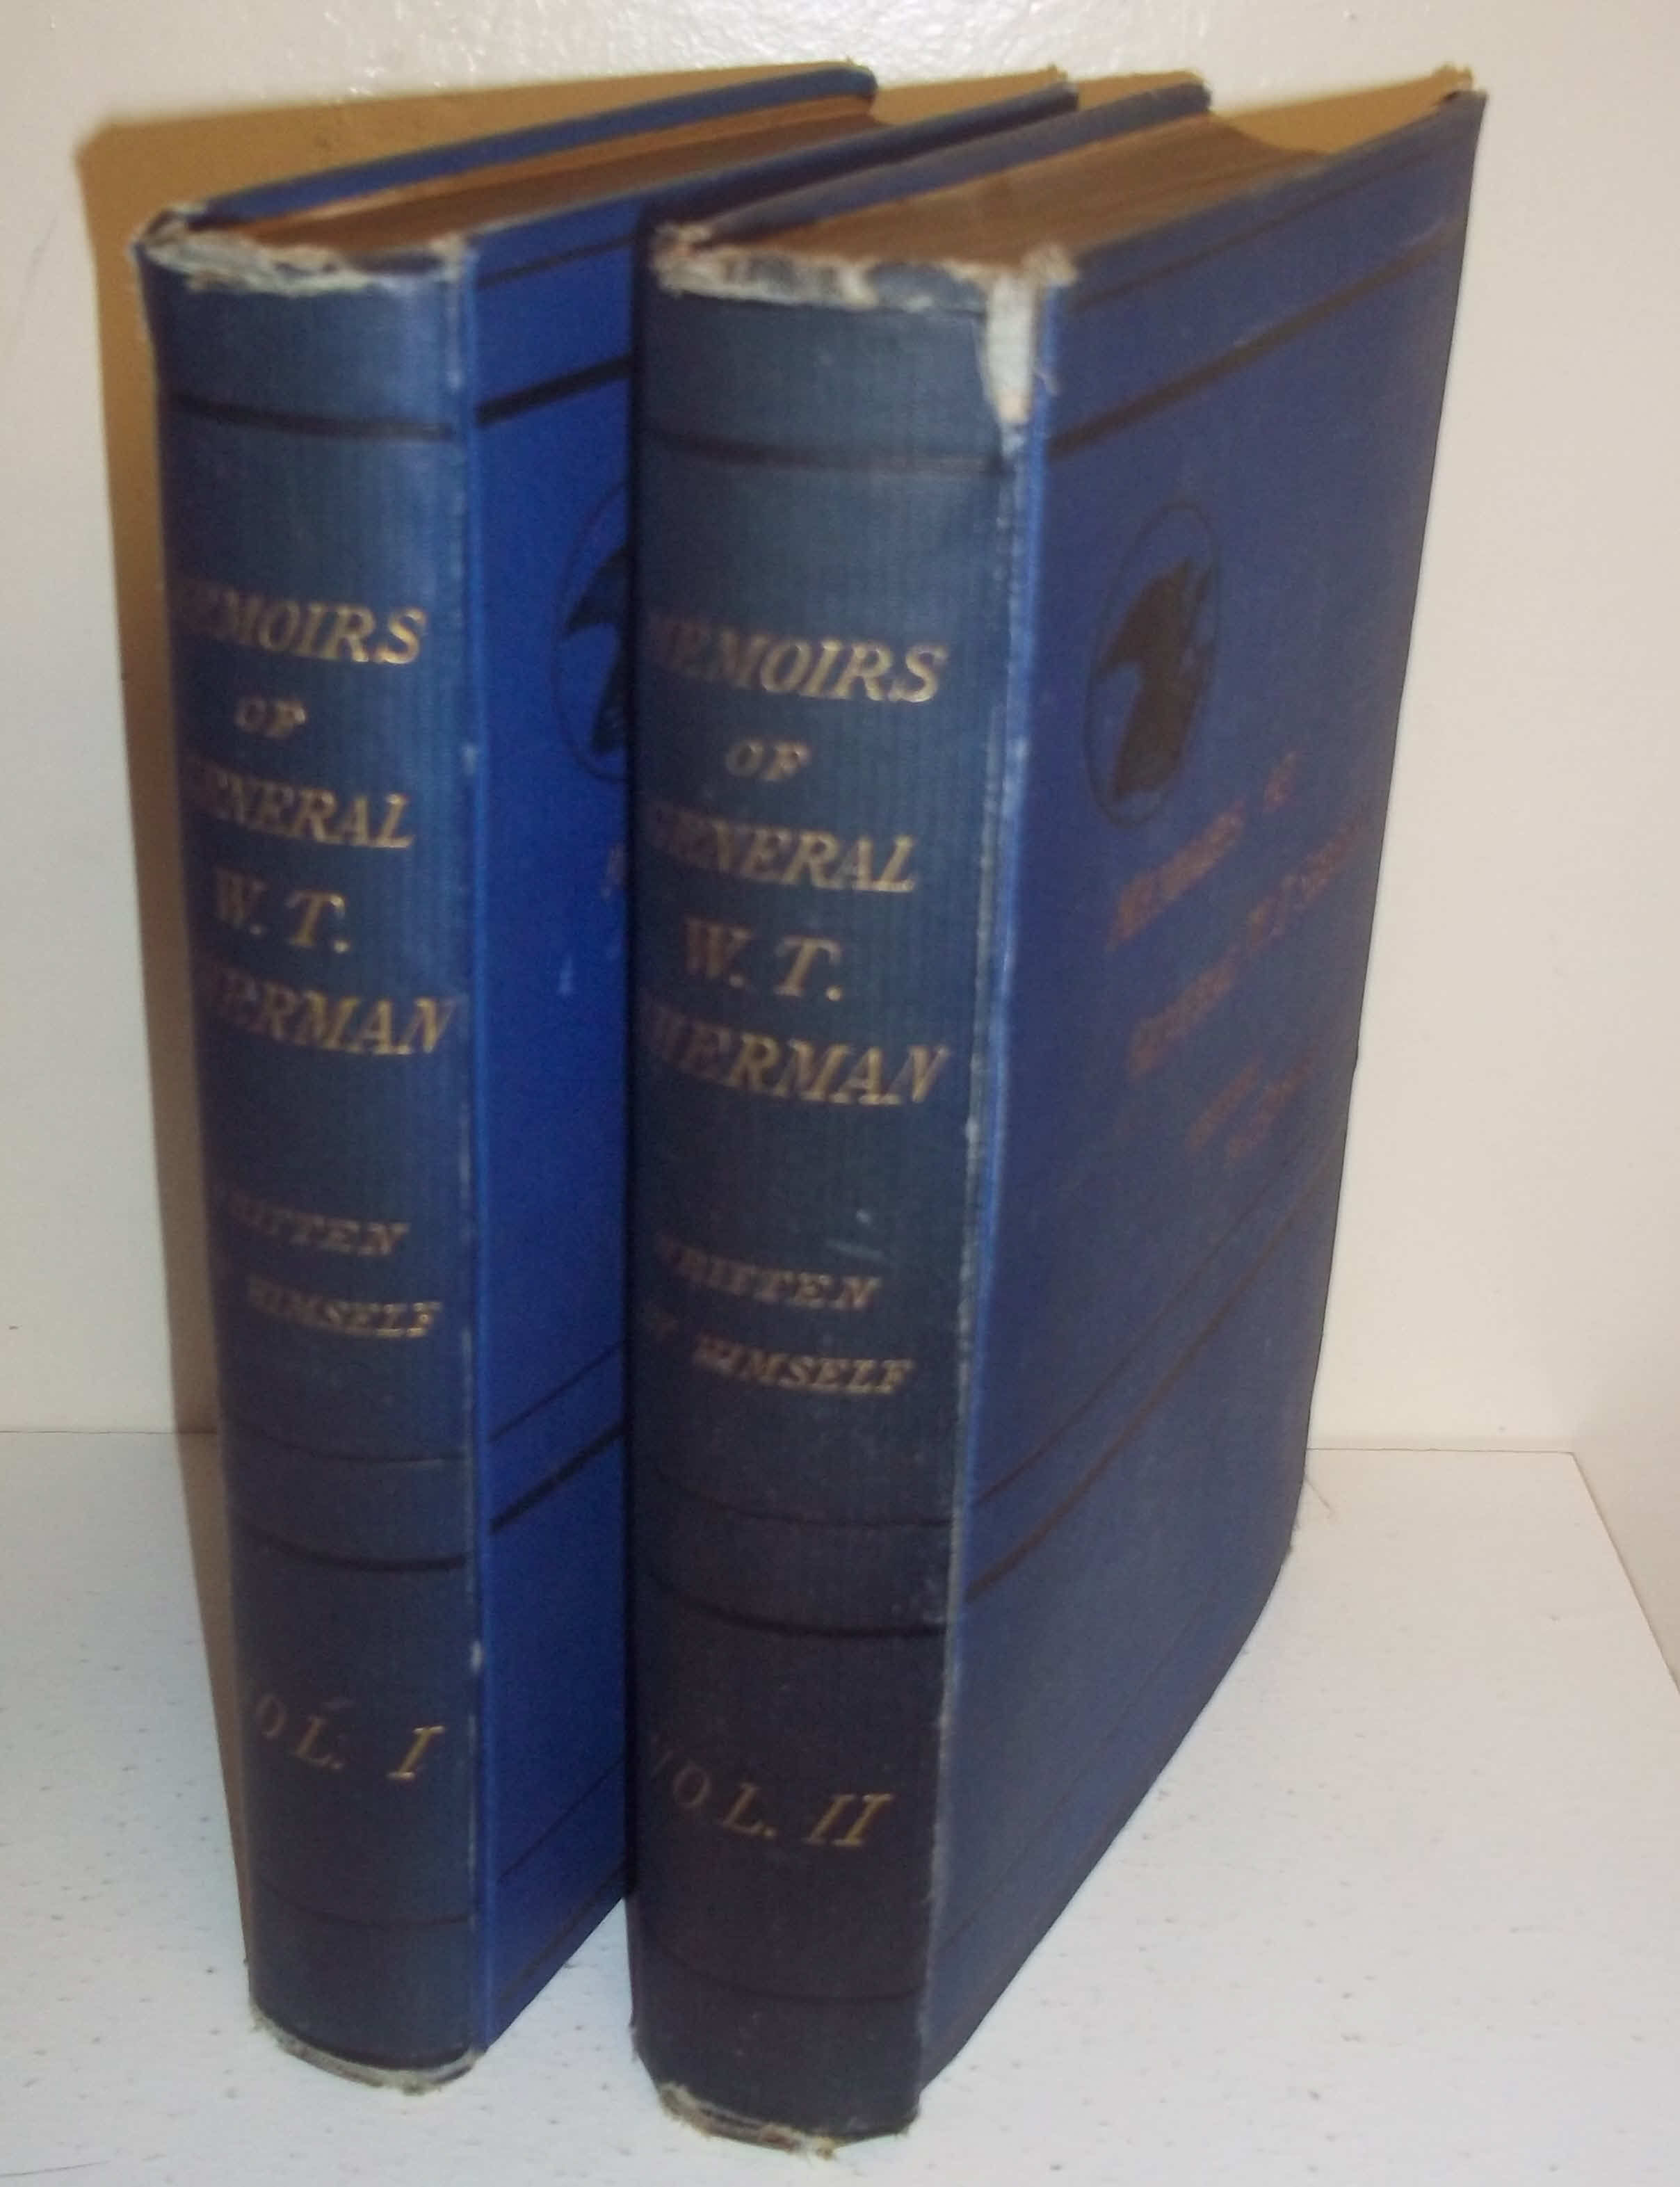 1875 Memoirs of General William T. Sherman 2 Vol 1st Ed